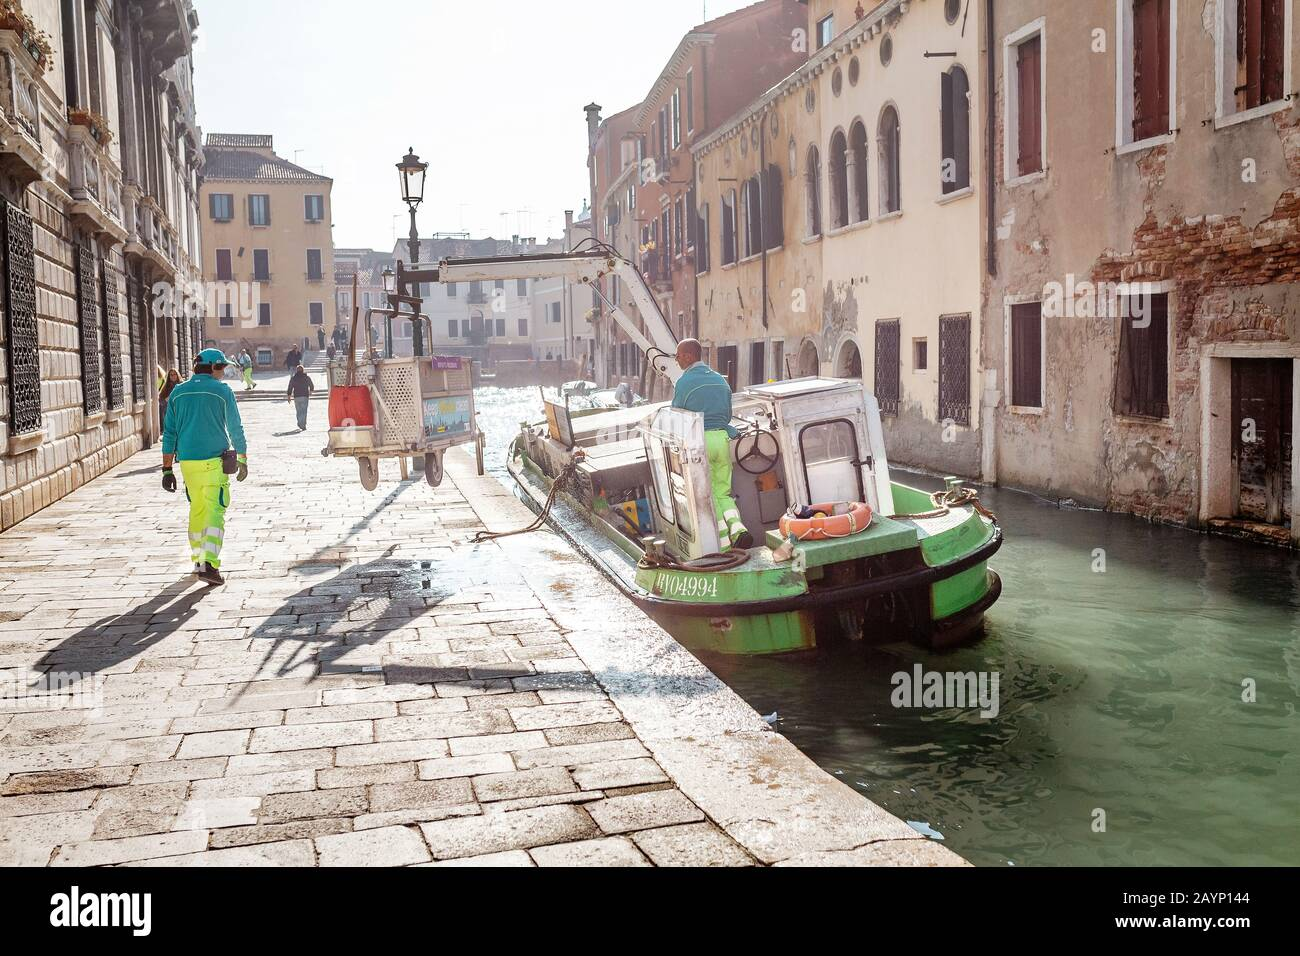 23 OCTOBER 2018, VENICE, ITALY: The boat with garbage on the venetian channel. Recycle of rubbish and trash and municipal service concept Stock Photo